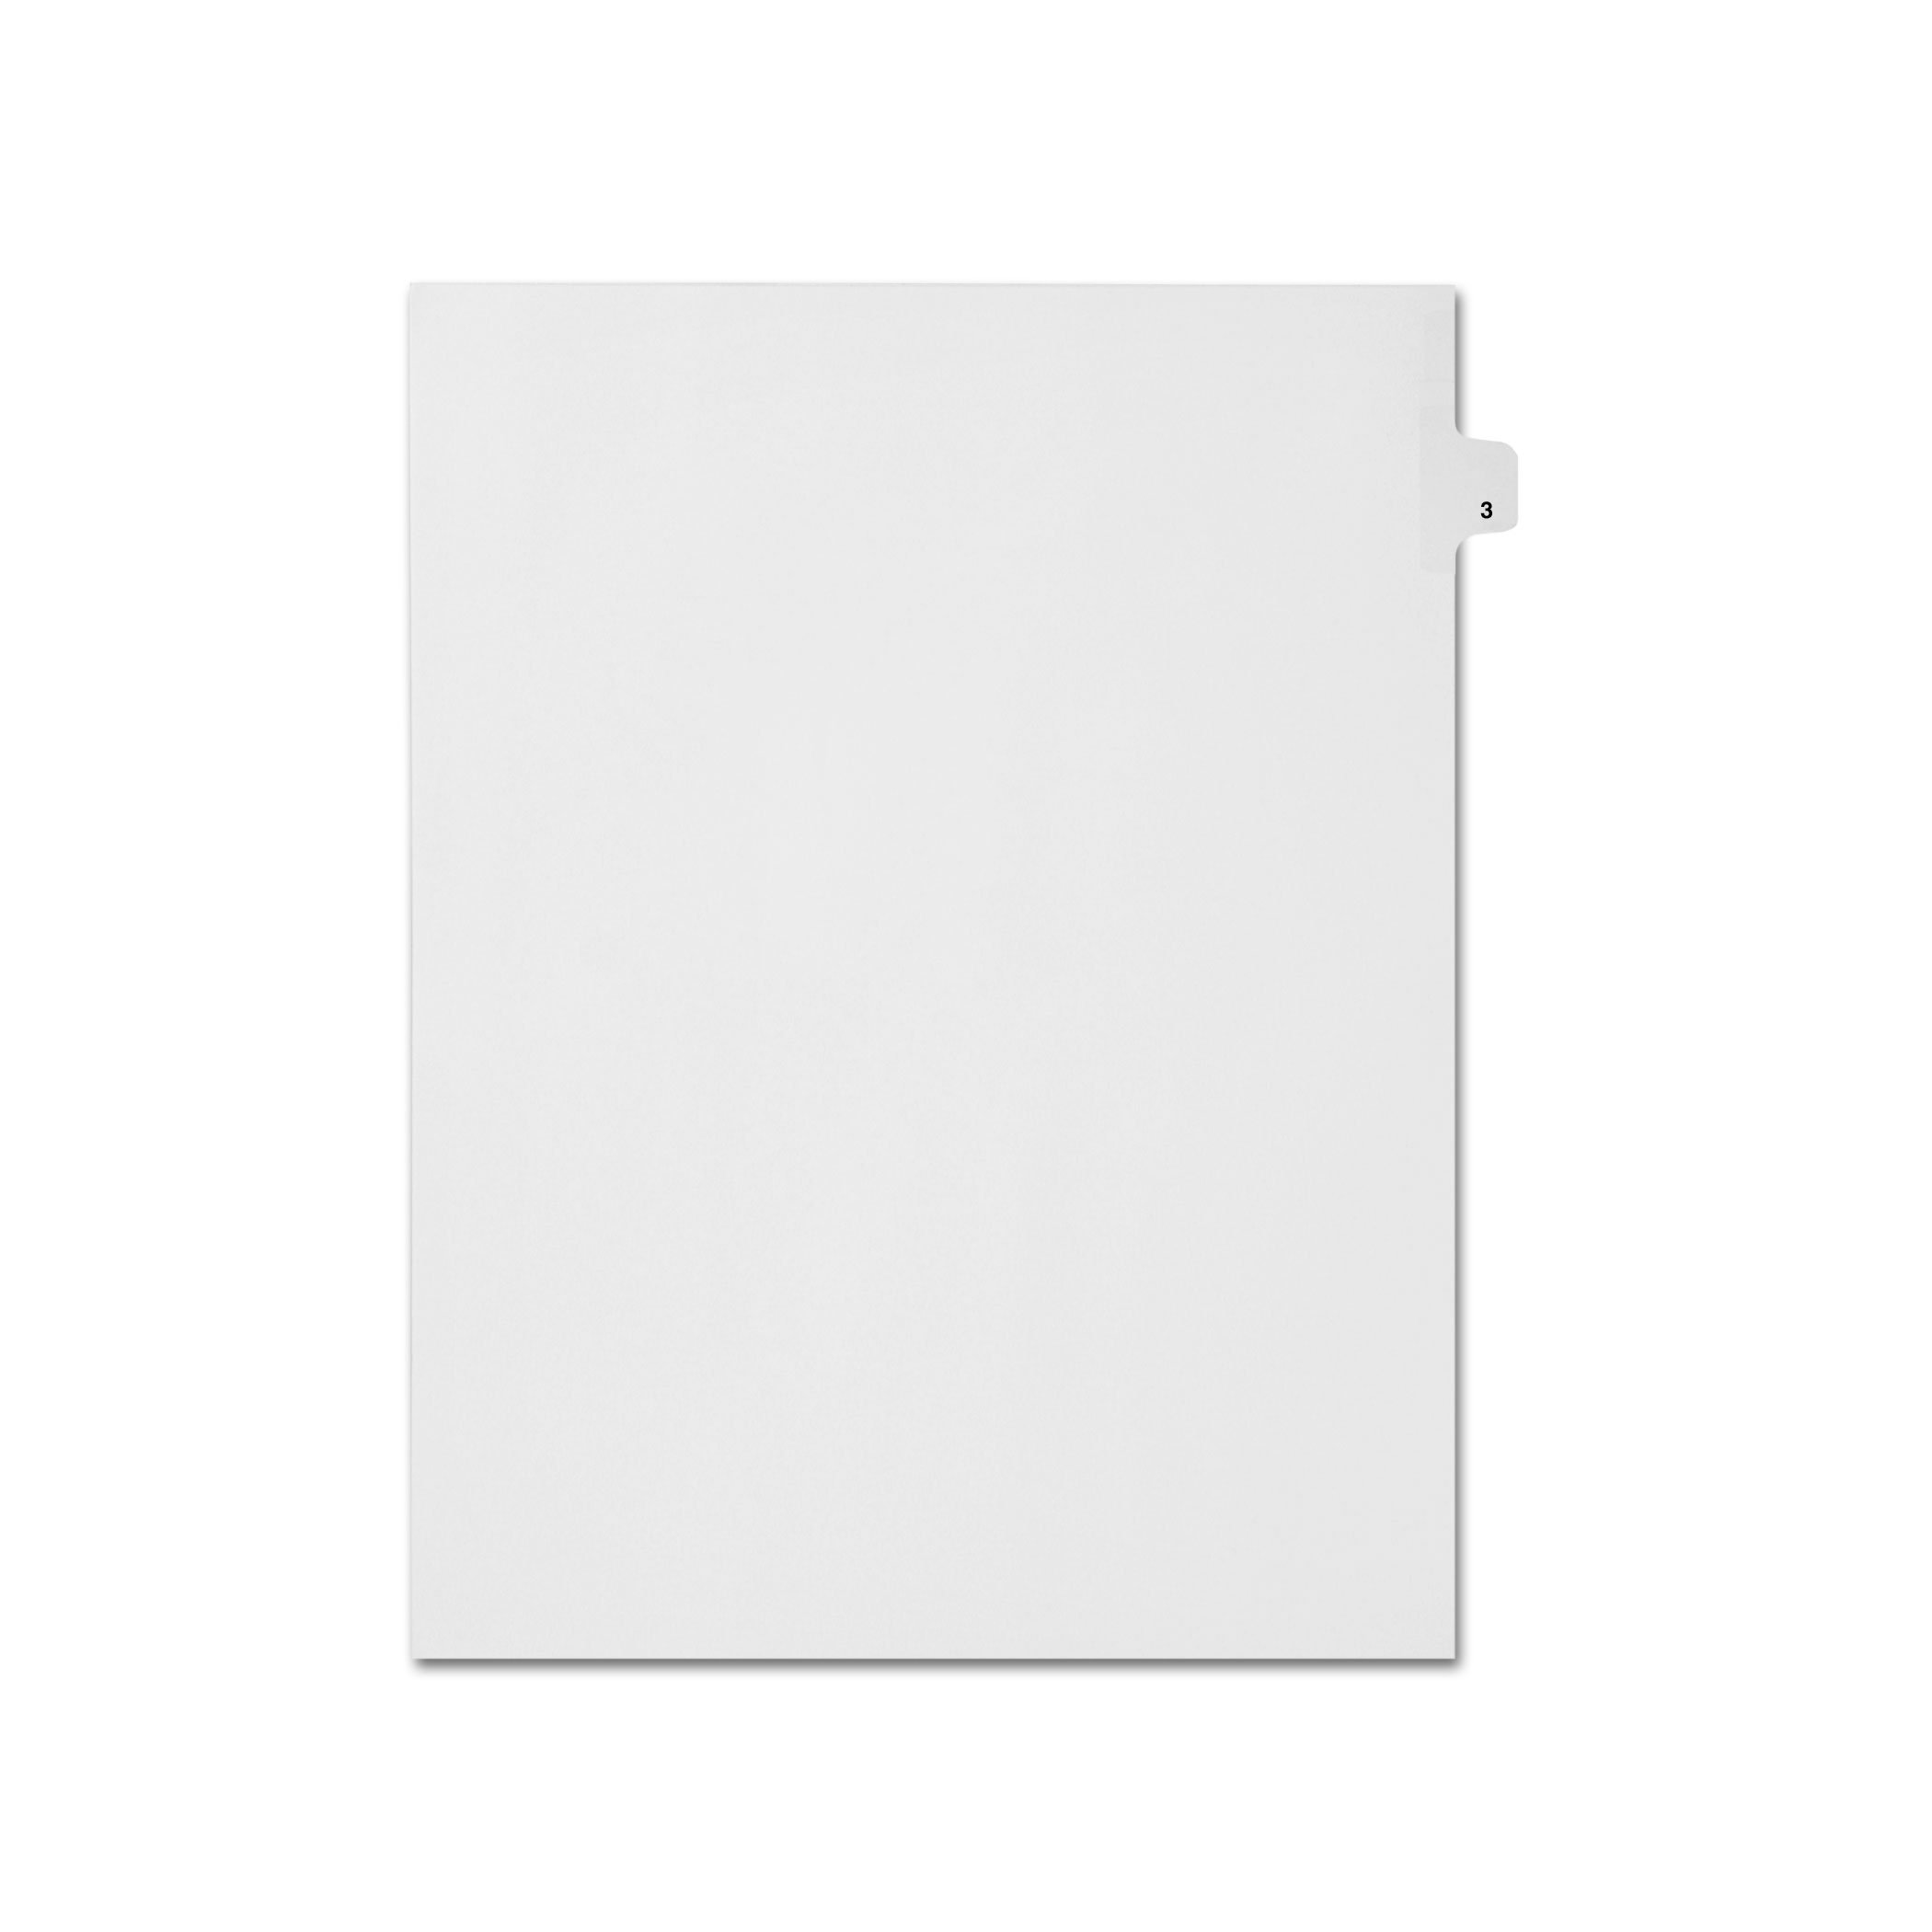 AMZfiling Individual Legal Index Tab Dividers, Compatible with Avery- Number 3, Letter Size, White, Side Tabs, Position 3 (25 Sheets/pkg)